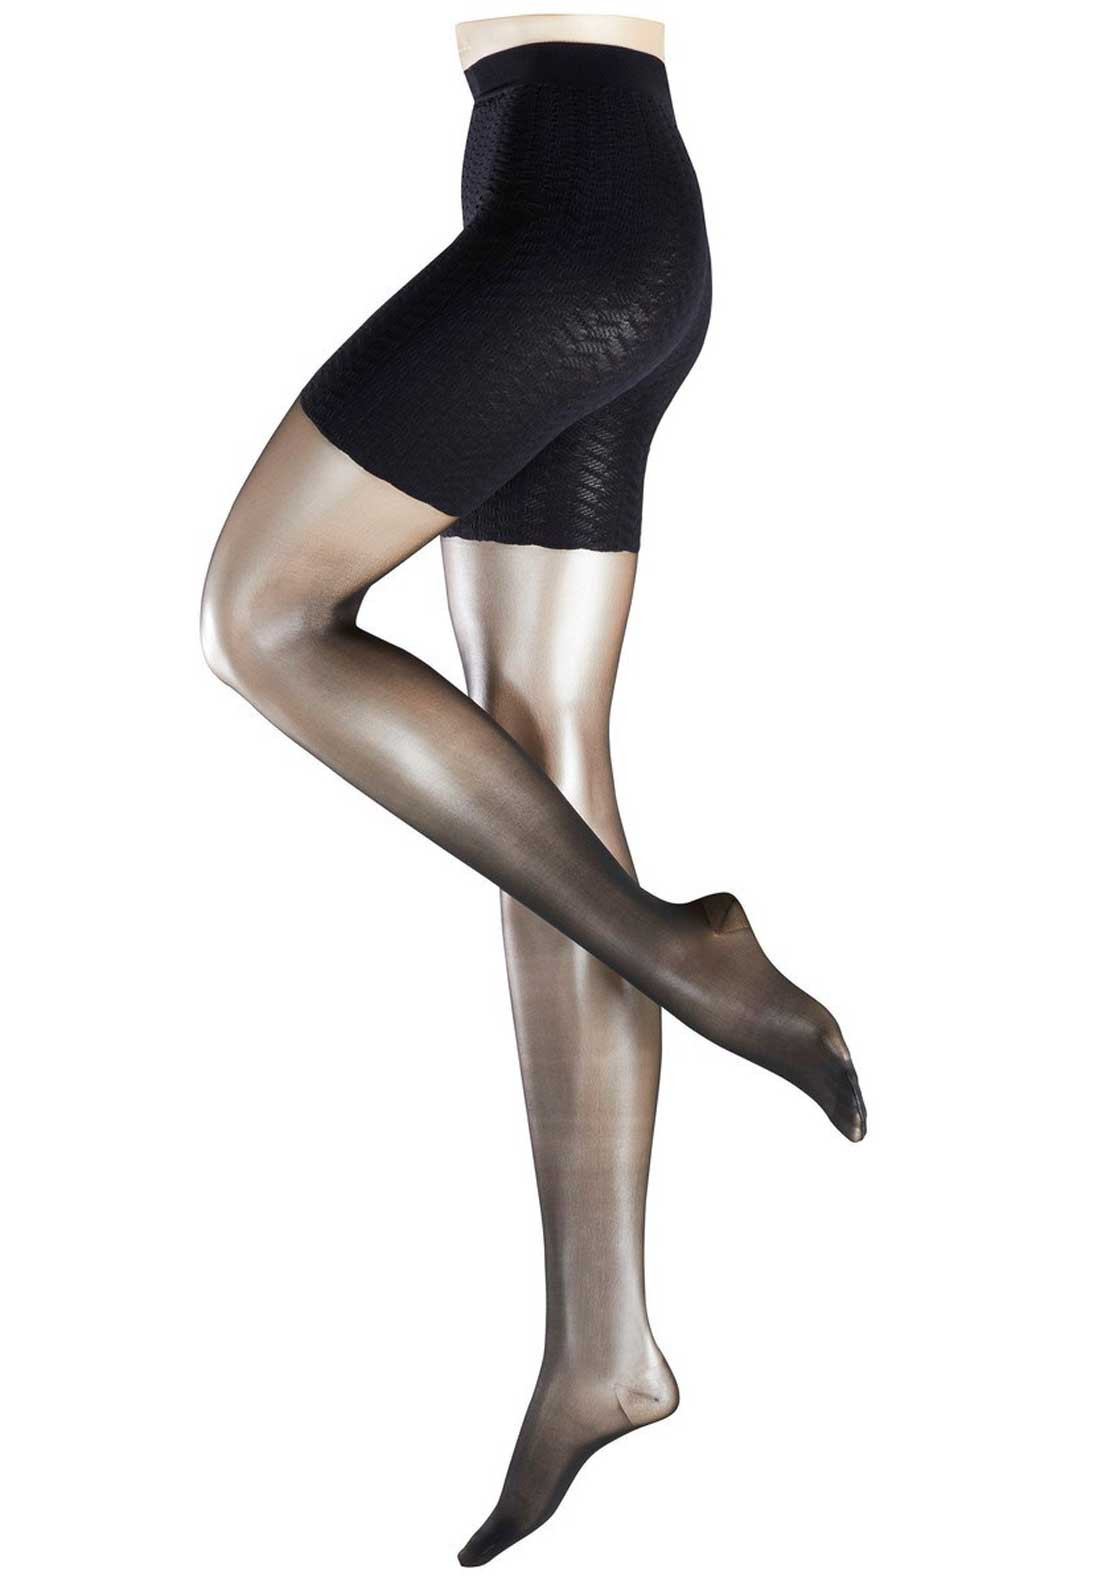 Falke 20 Denier Cellulite Control Tights, Black